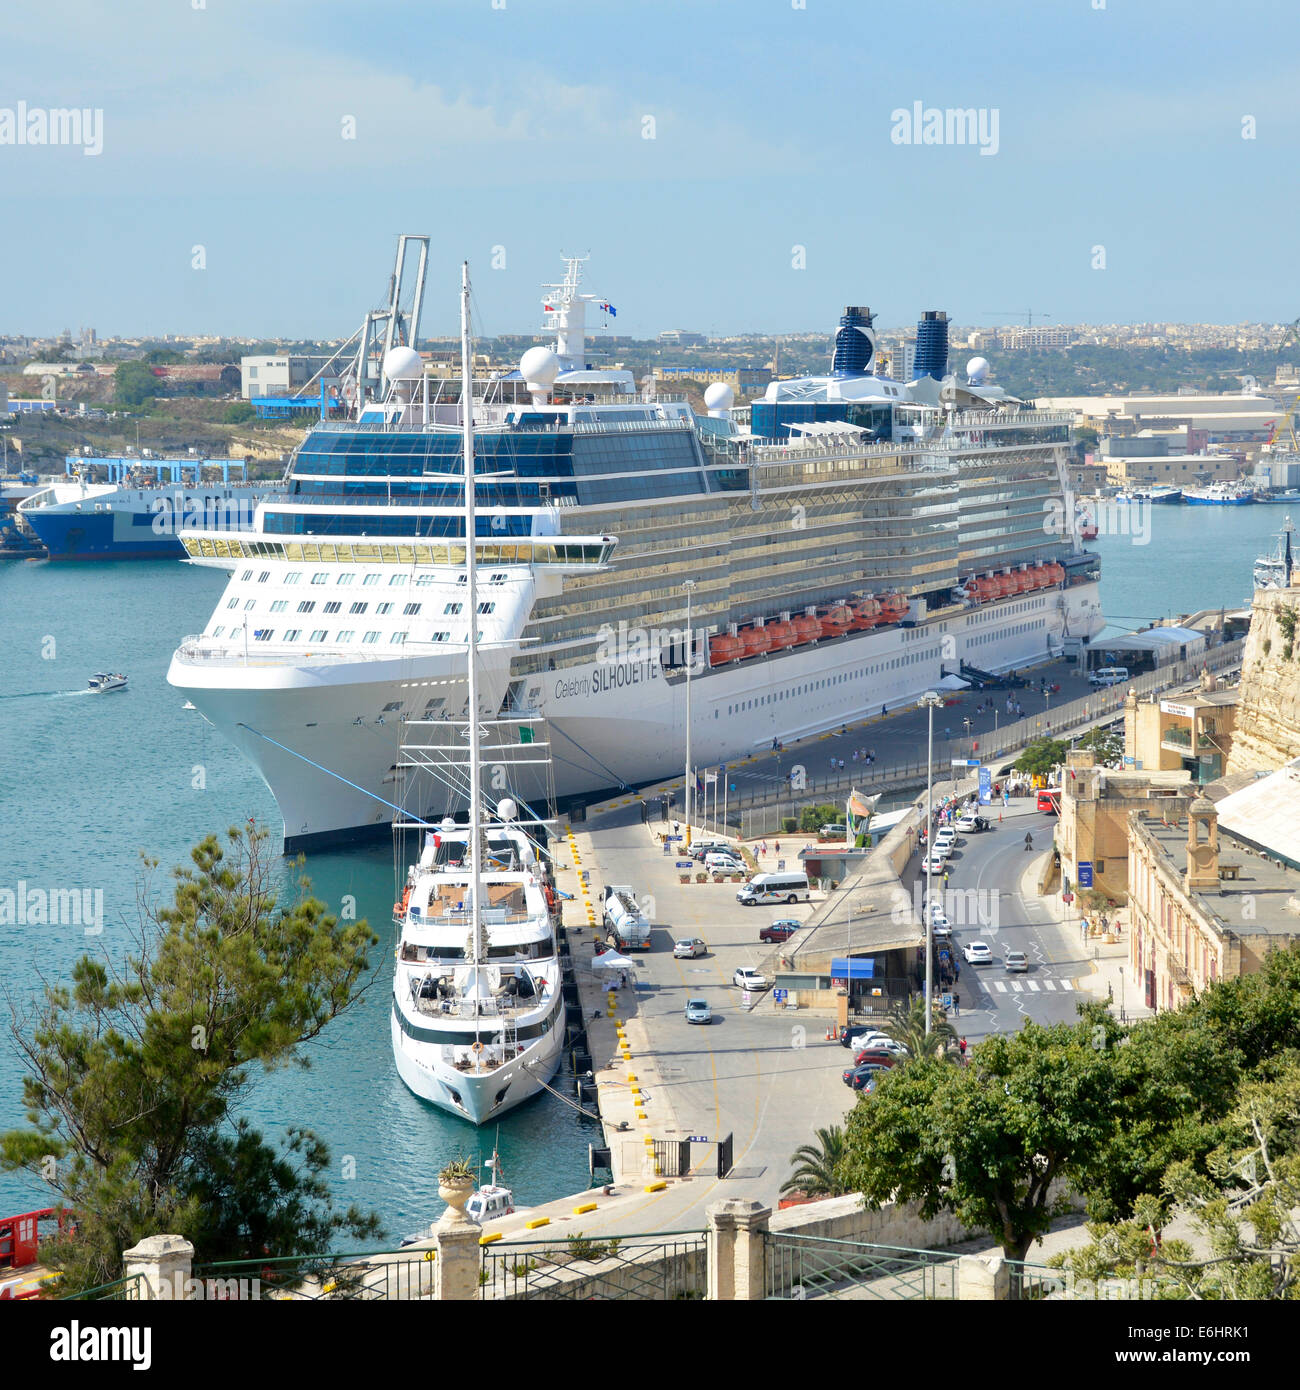 Large modern cruise ship Celebrity Silhouette moored in her home port in the Grand Harbour at Valletta - Stock Image